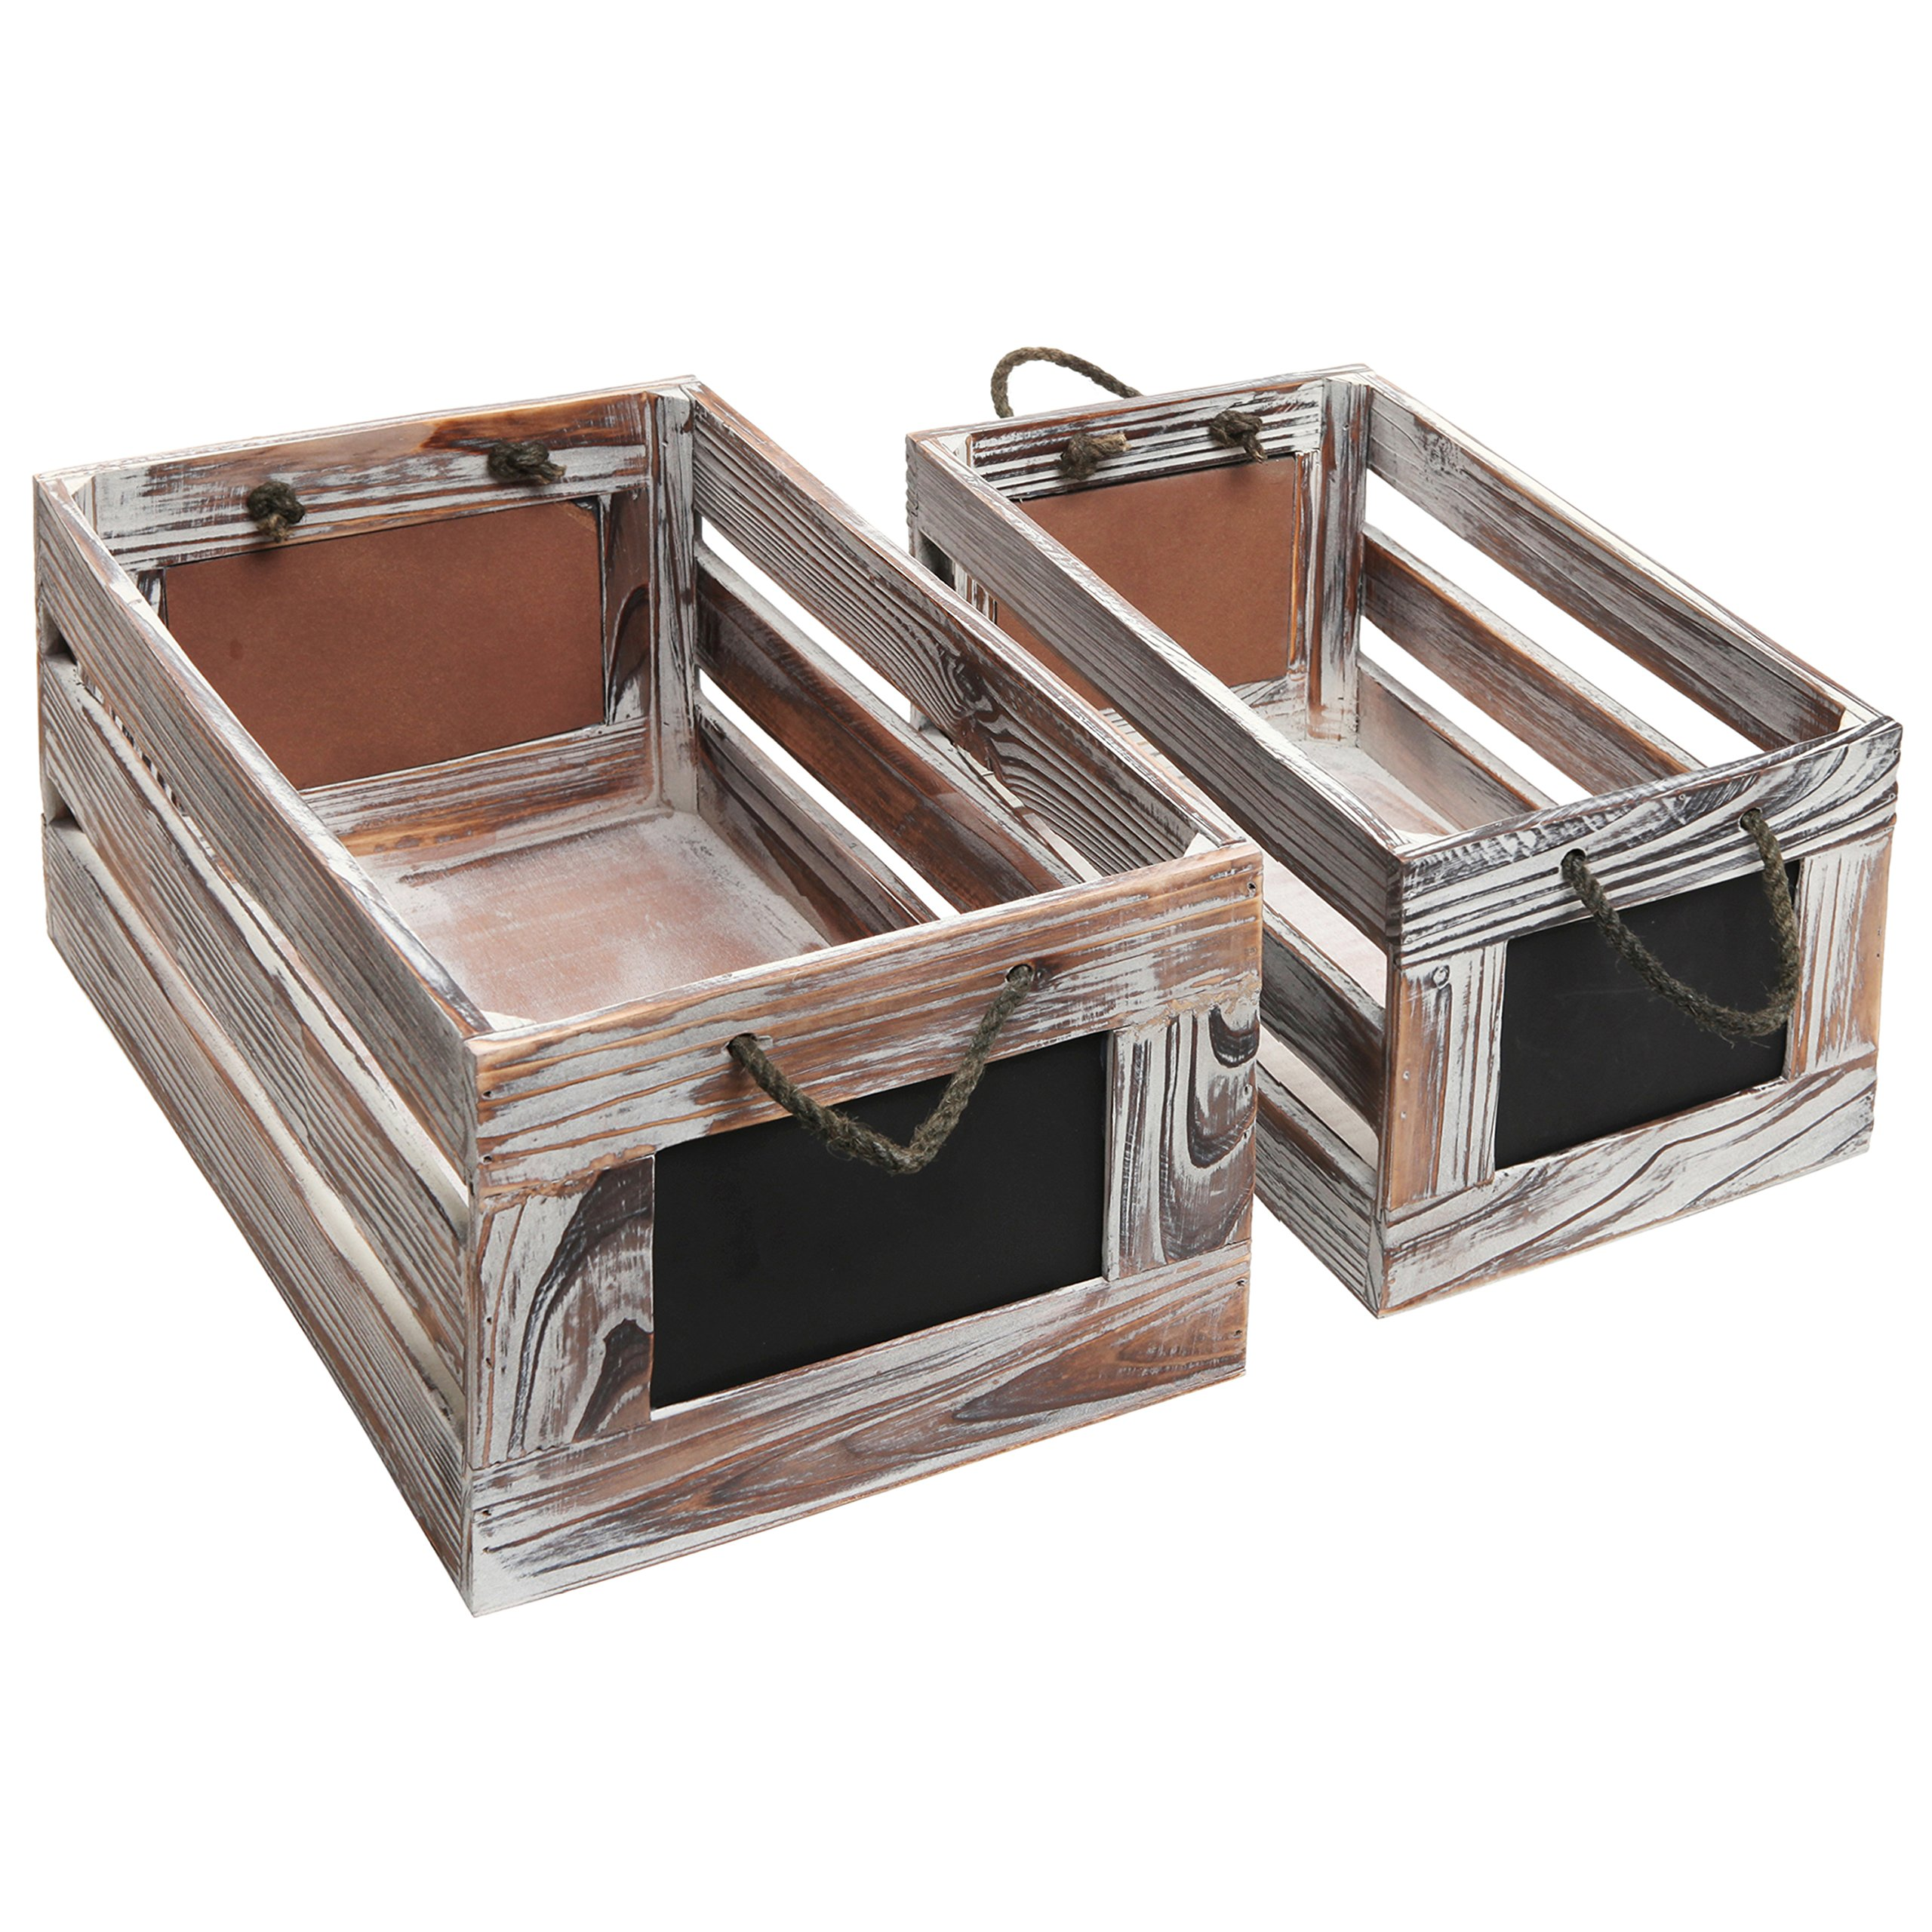 Distressed Torched Wood Finish Nesting Boxes / Rustic Storage Crates with Chalkboard Labels (Set of 2) by MyGift (Image #3)